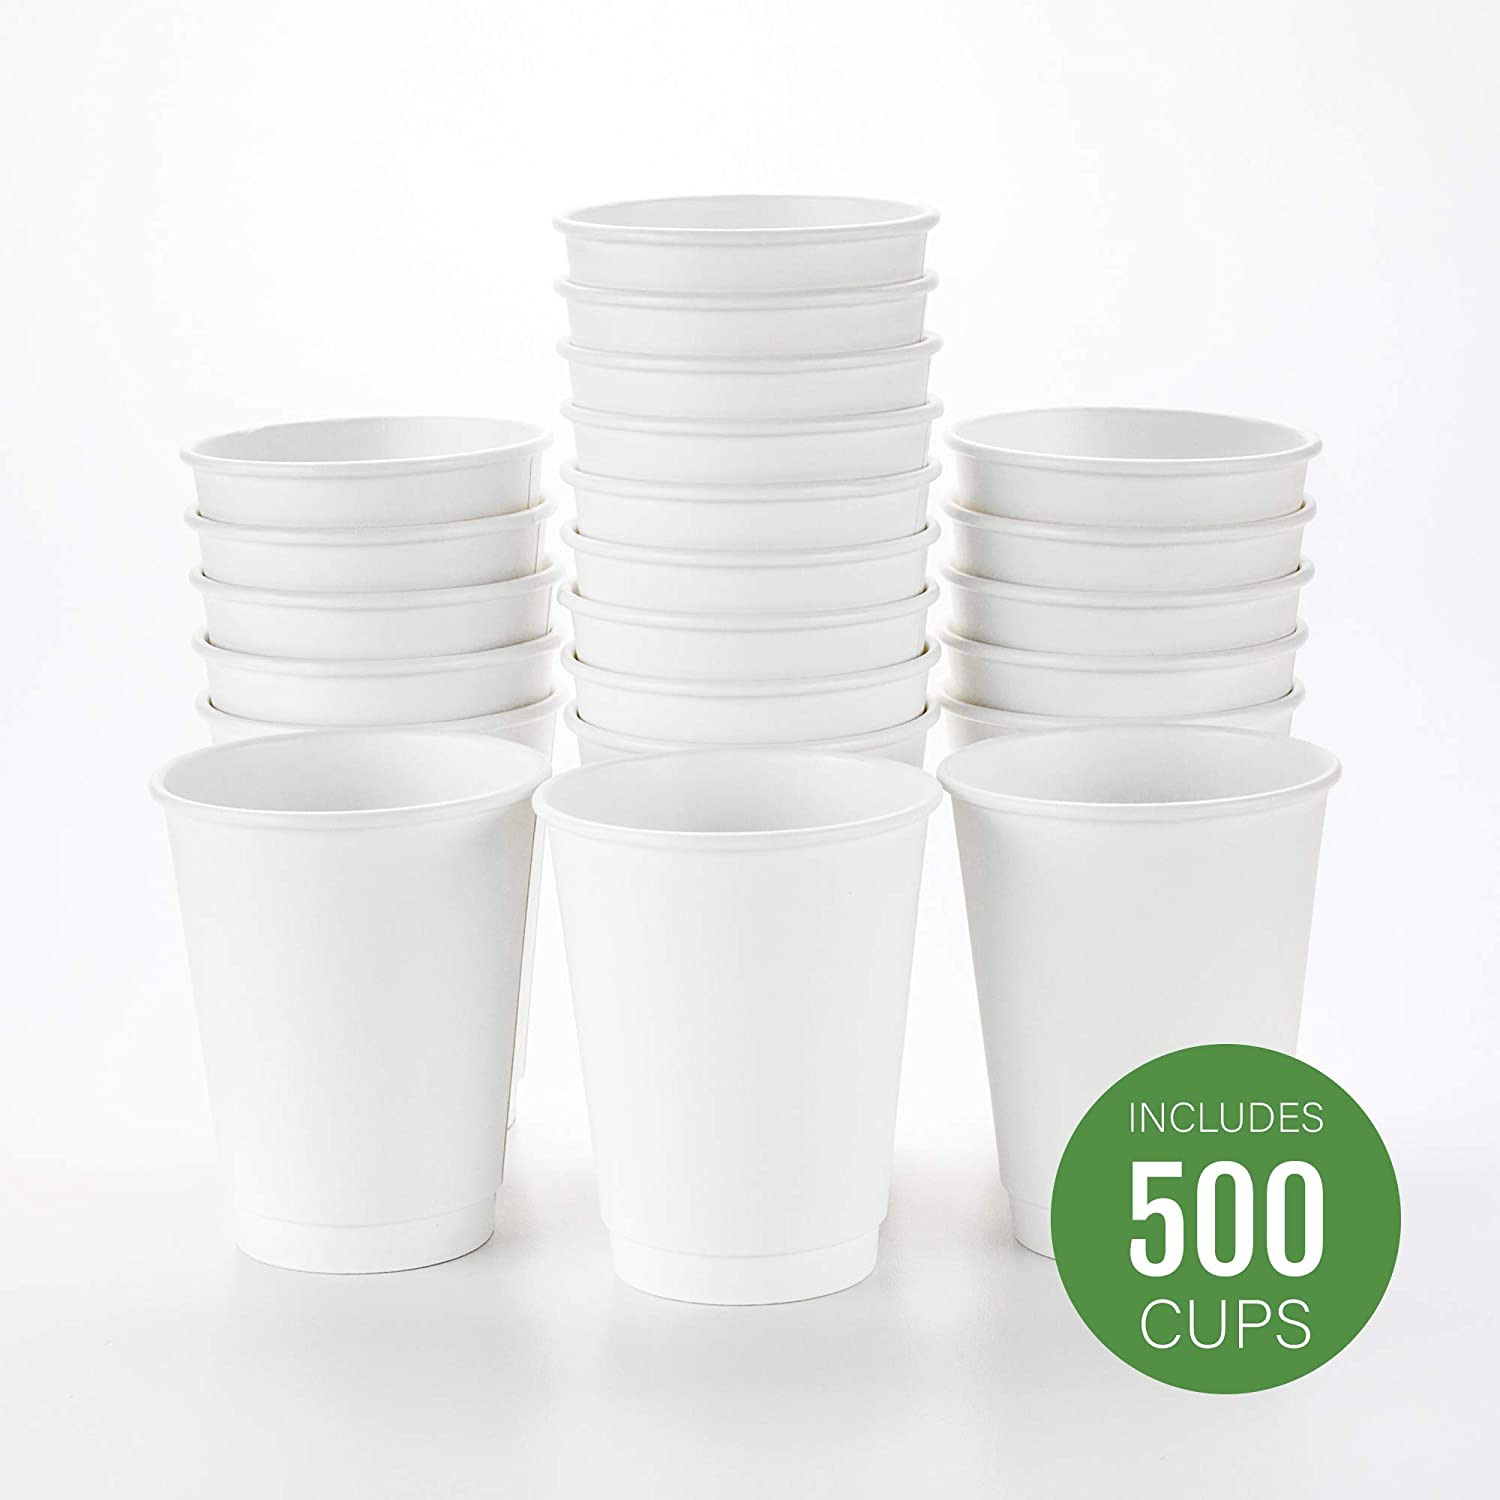 Details about Disposable Coffee Cups Triple Wall 4,8,12 &16Oz WLids Takeaway Bulk Coffee Cup